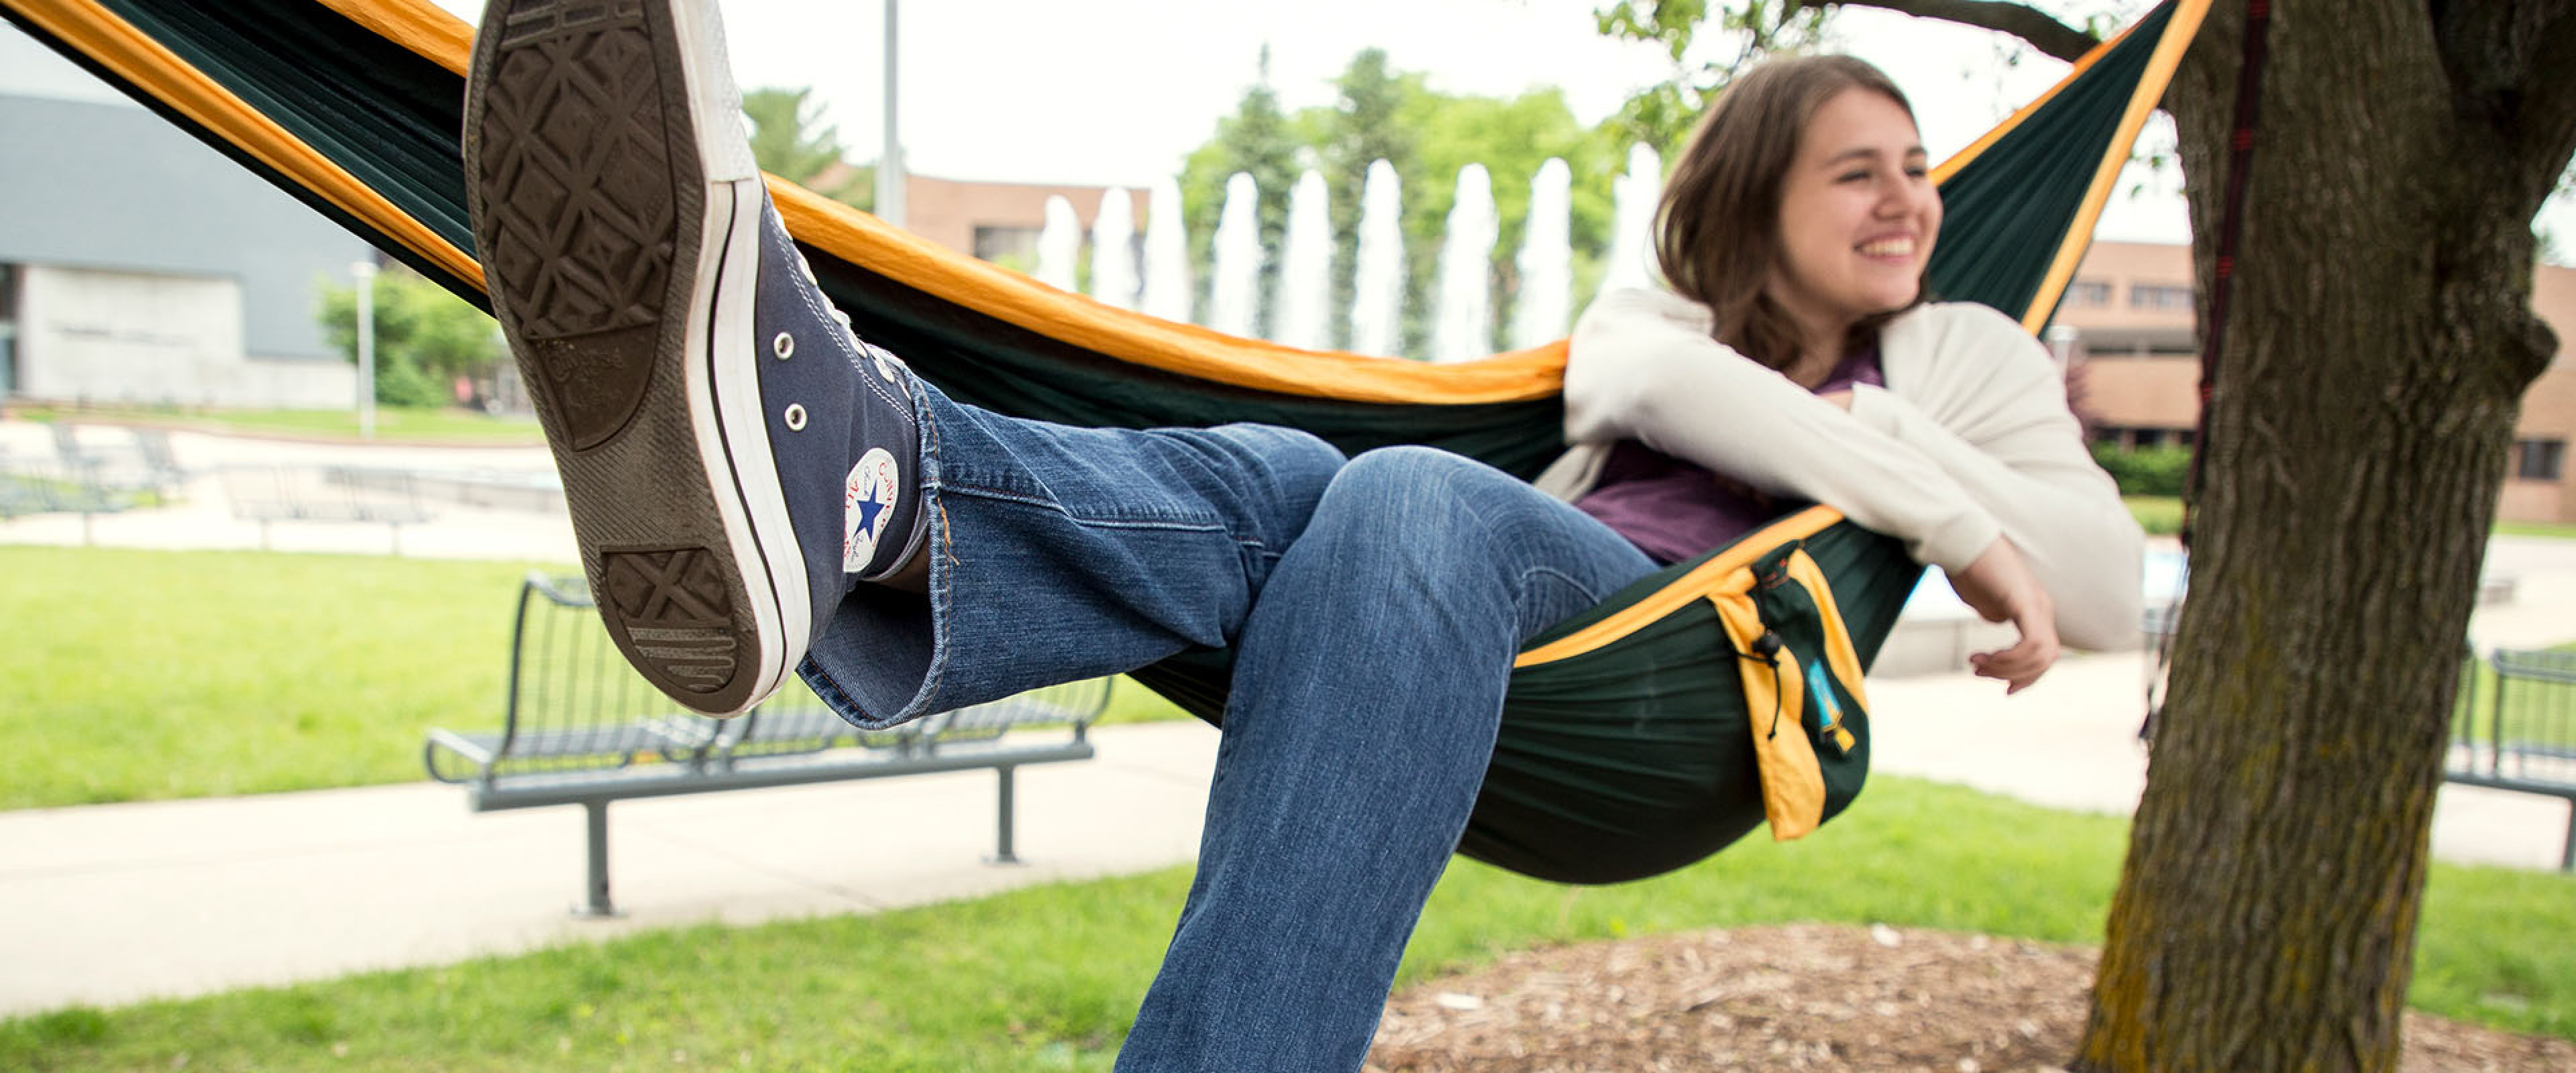 A WMU student relaxes in a hammock in front of the Miller Plaza fountain